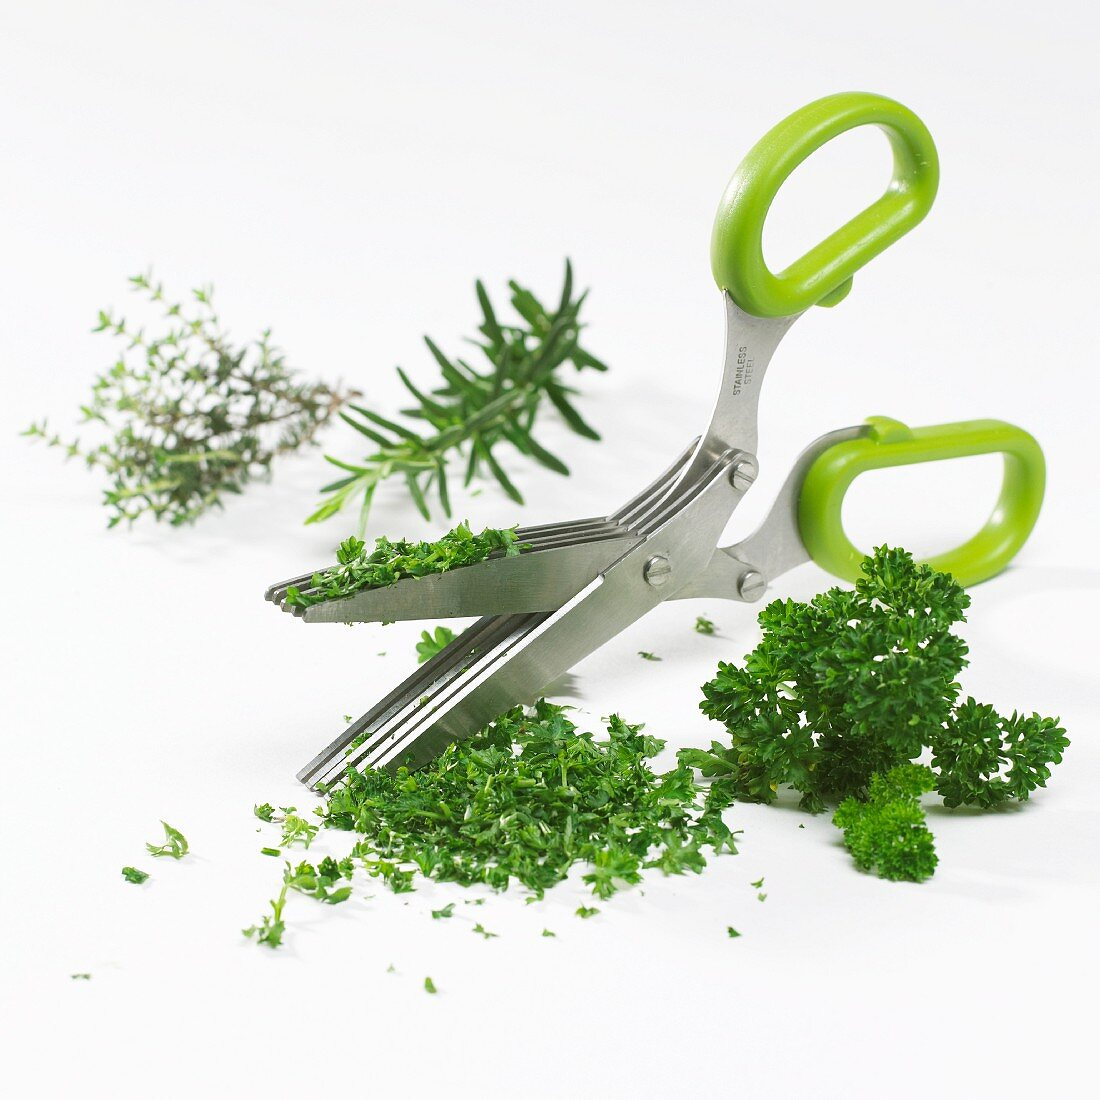 Herb scissors with multiple blades